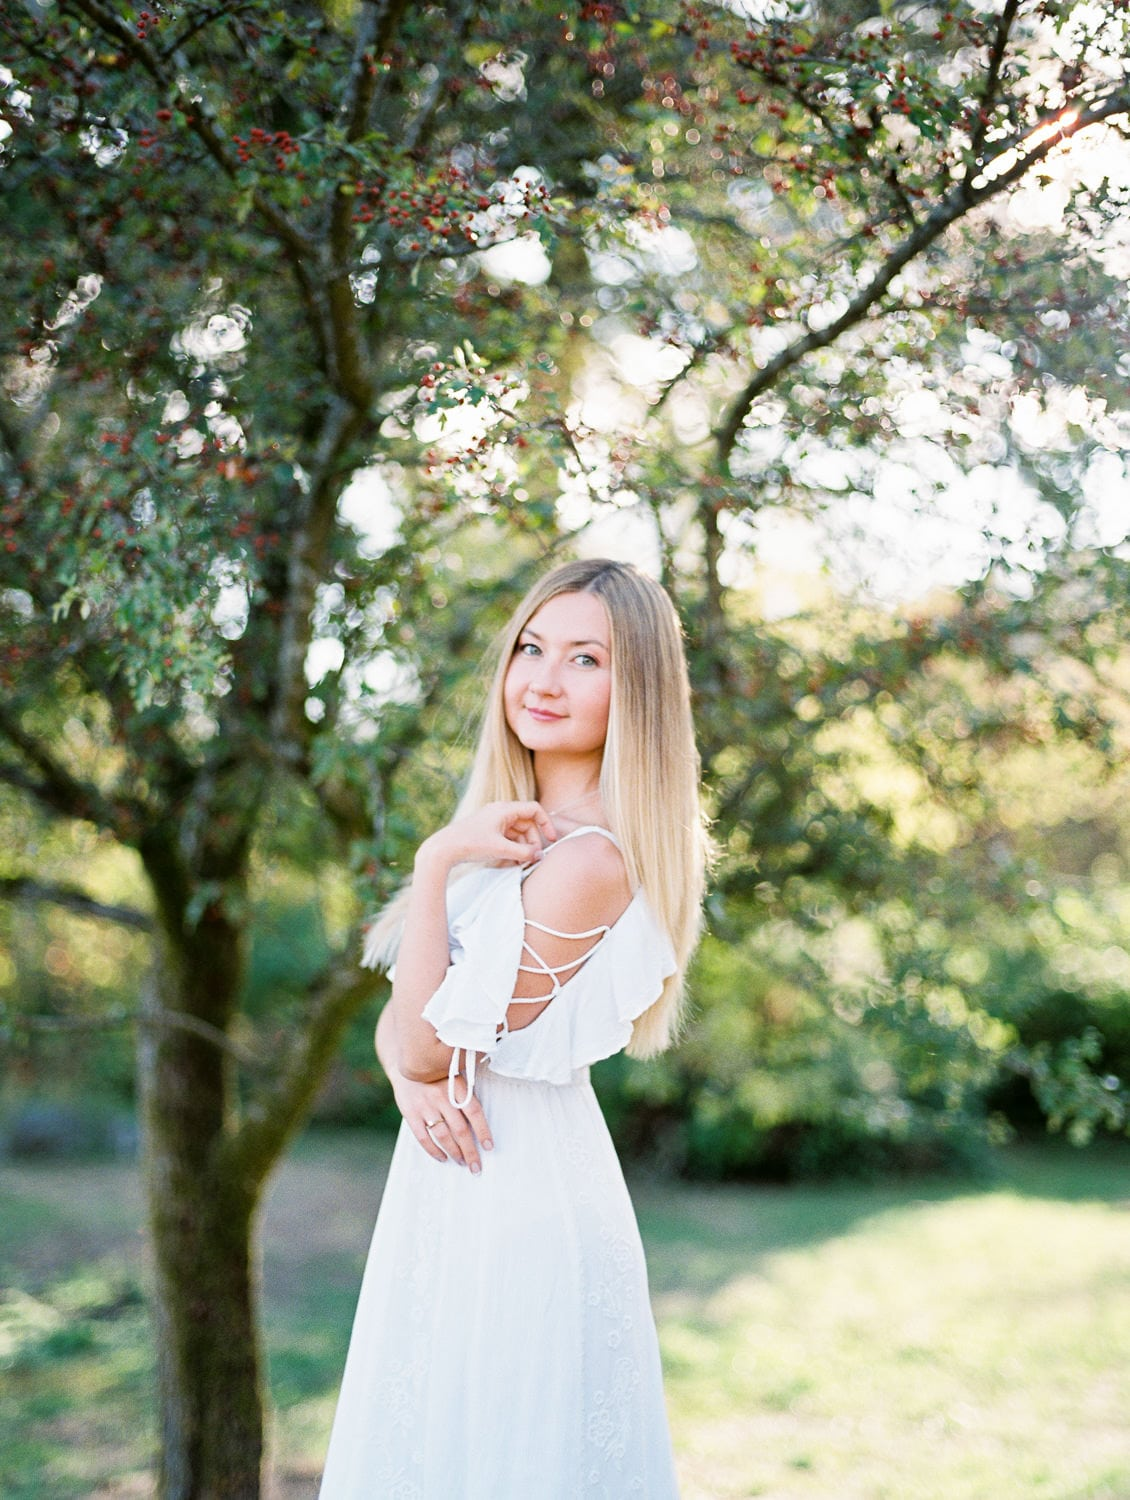 Girl in white dress portrait | Vancouver fine art photographer